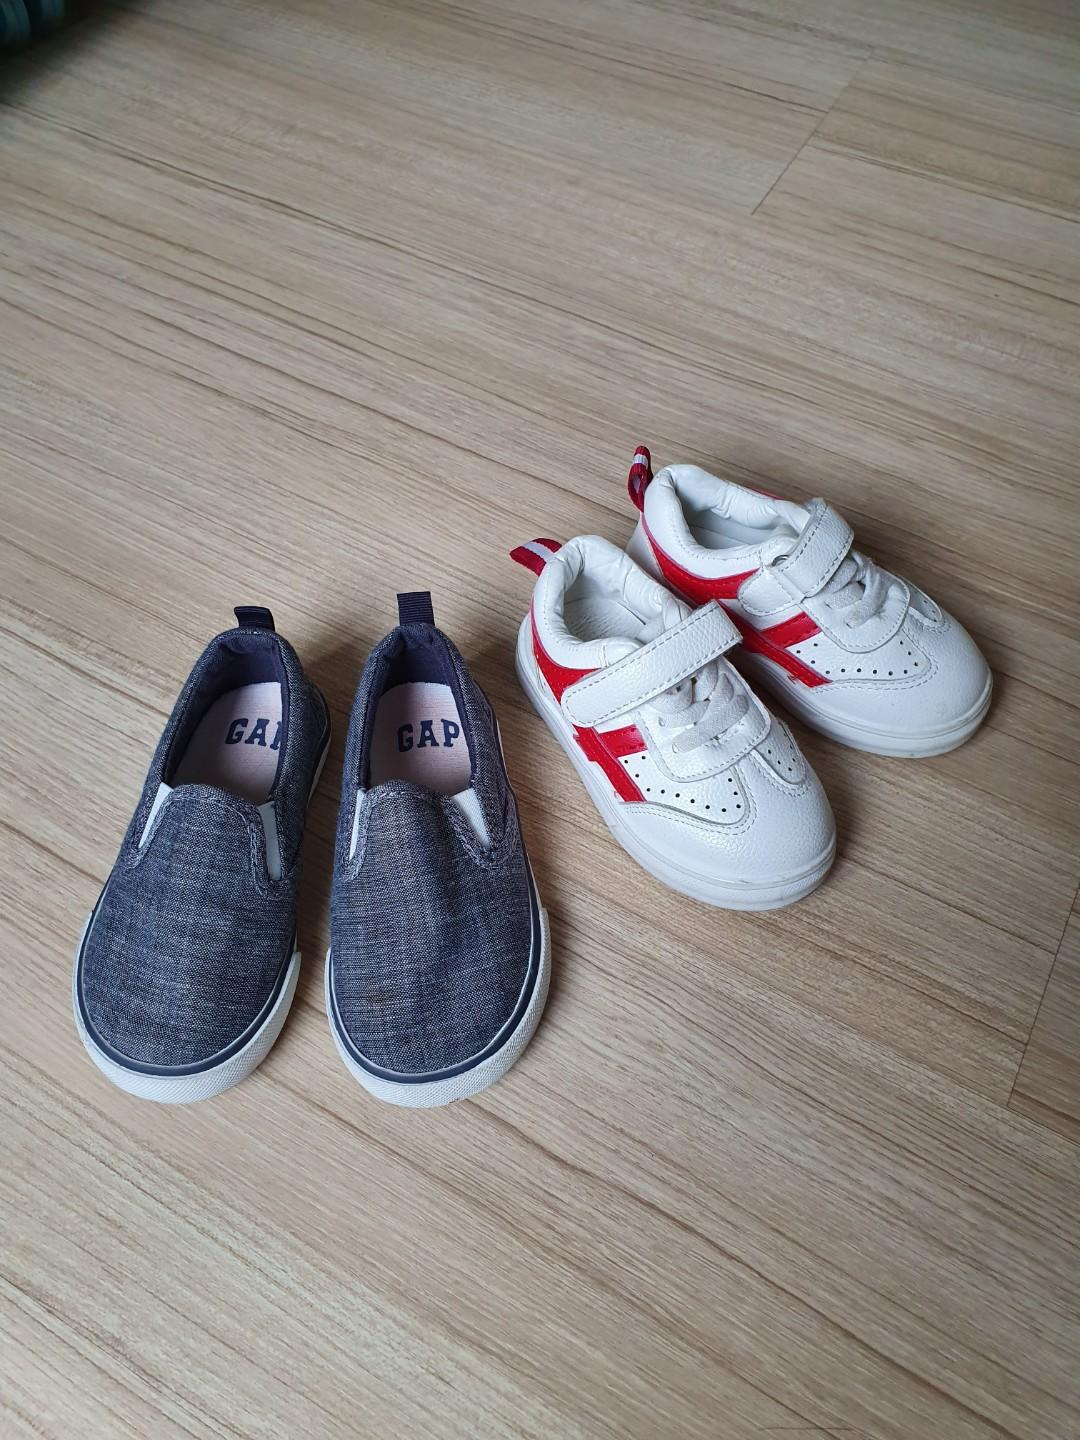 Baby Boy's Shoes Combo